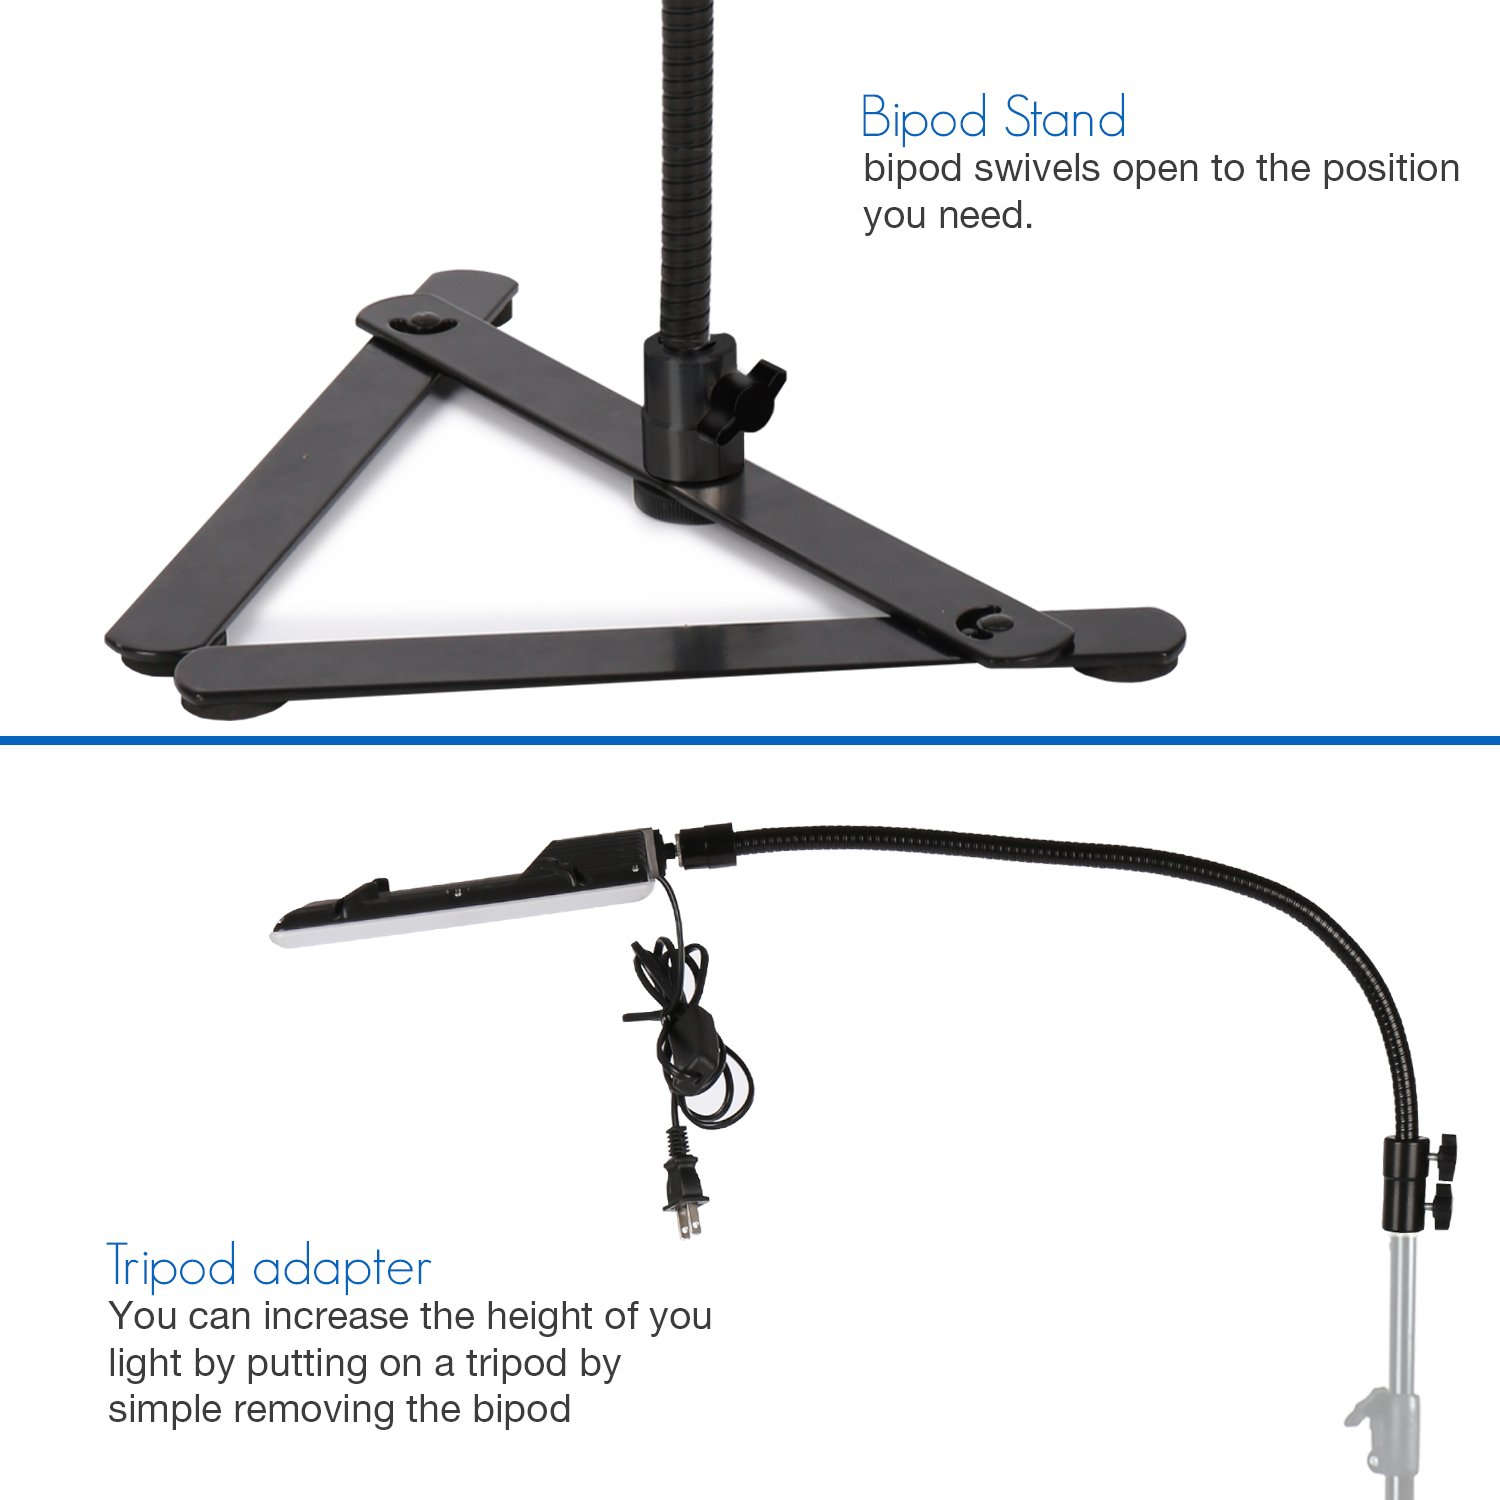 LS Photography LED Light Panel with Gooseneck Extension Adapter and Acrylic Black & White Reflective Display Table Riser, Table Top Photo Video Lighting Kit, LGG765 by LS Photography (Image #2)